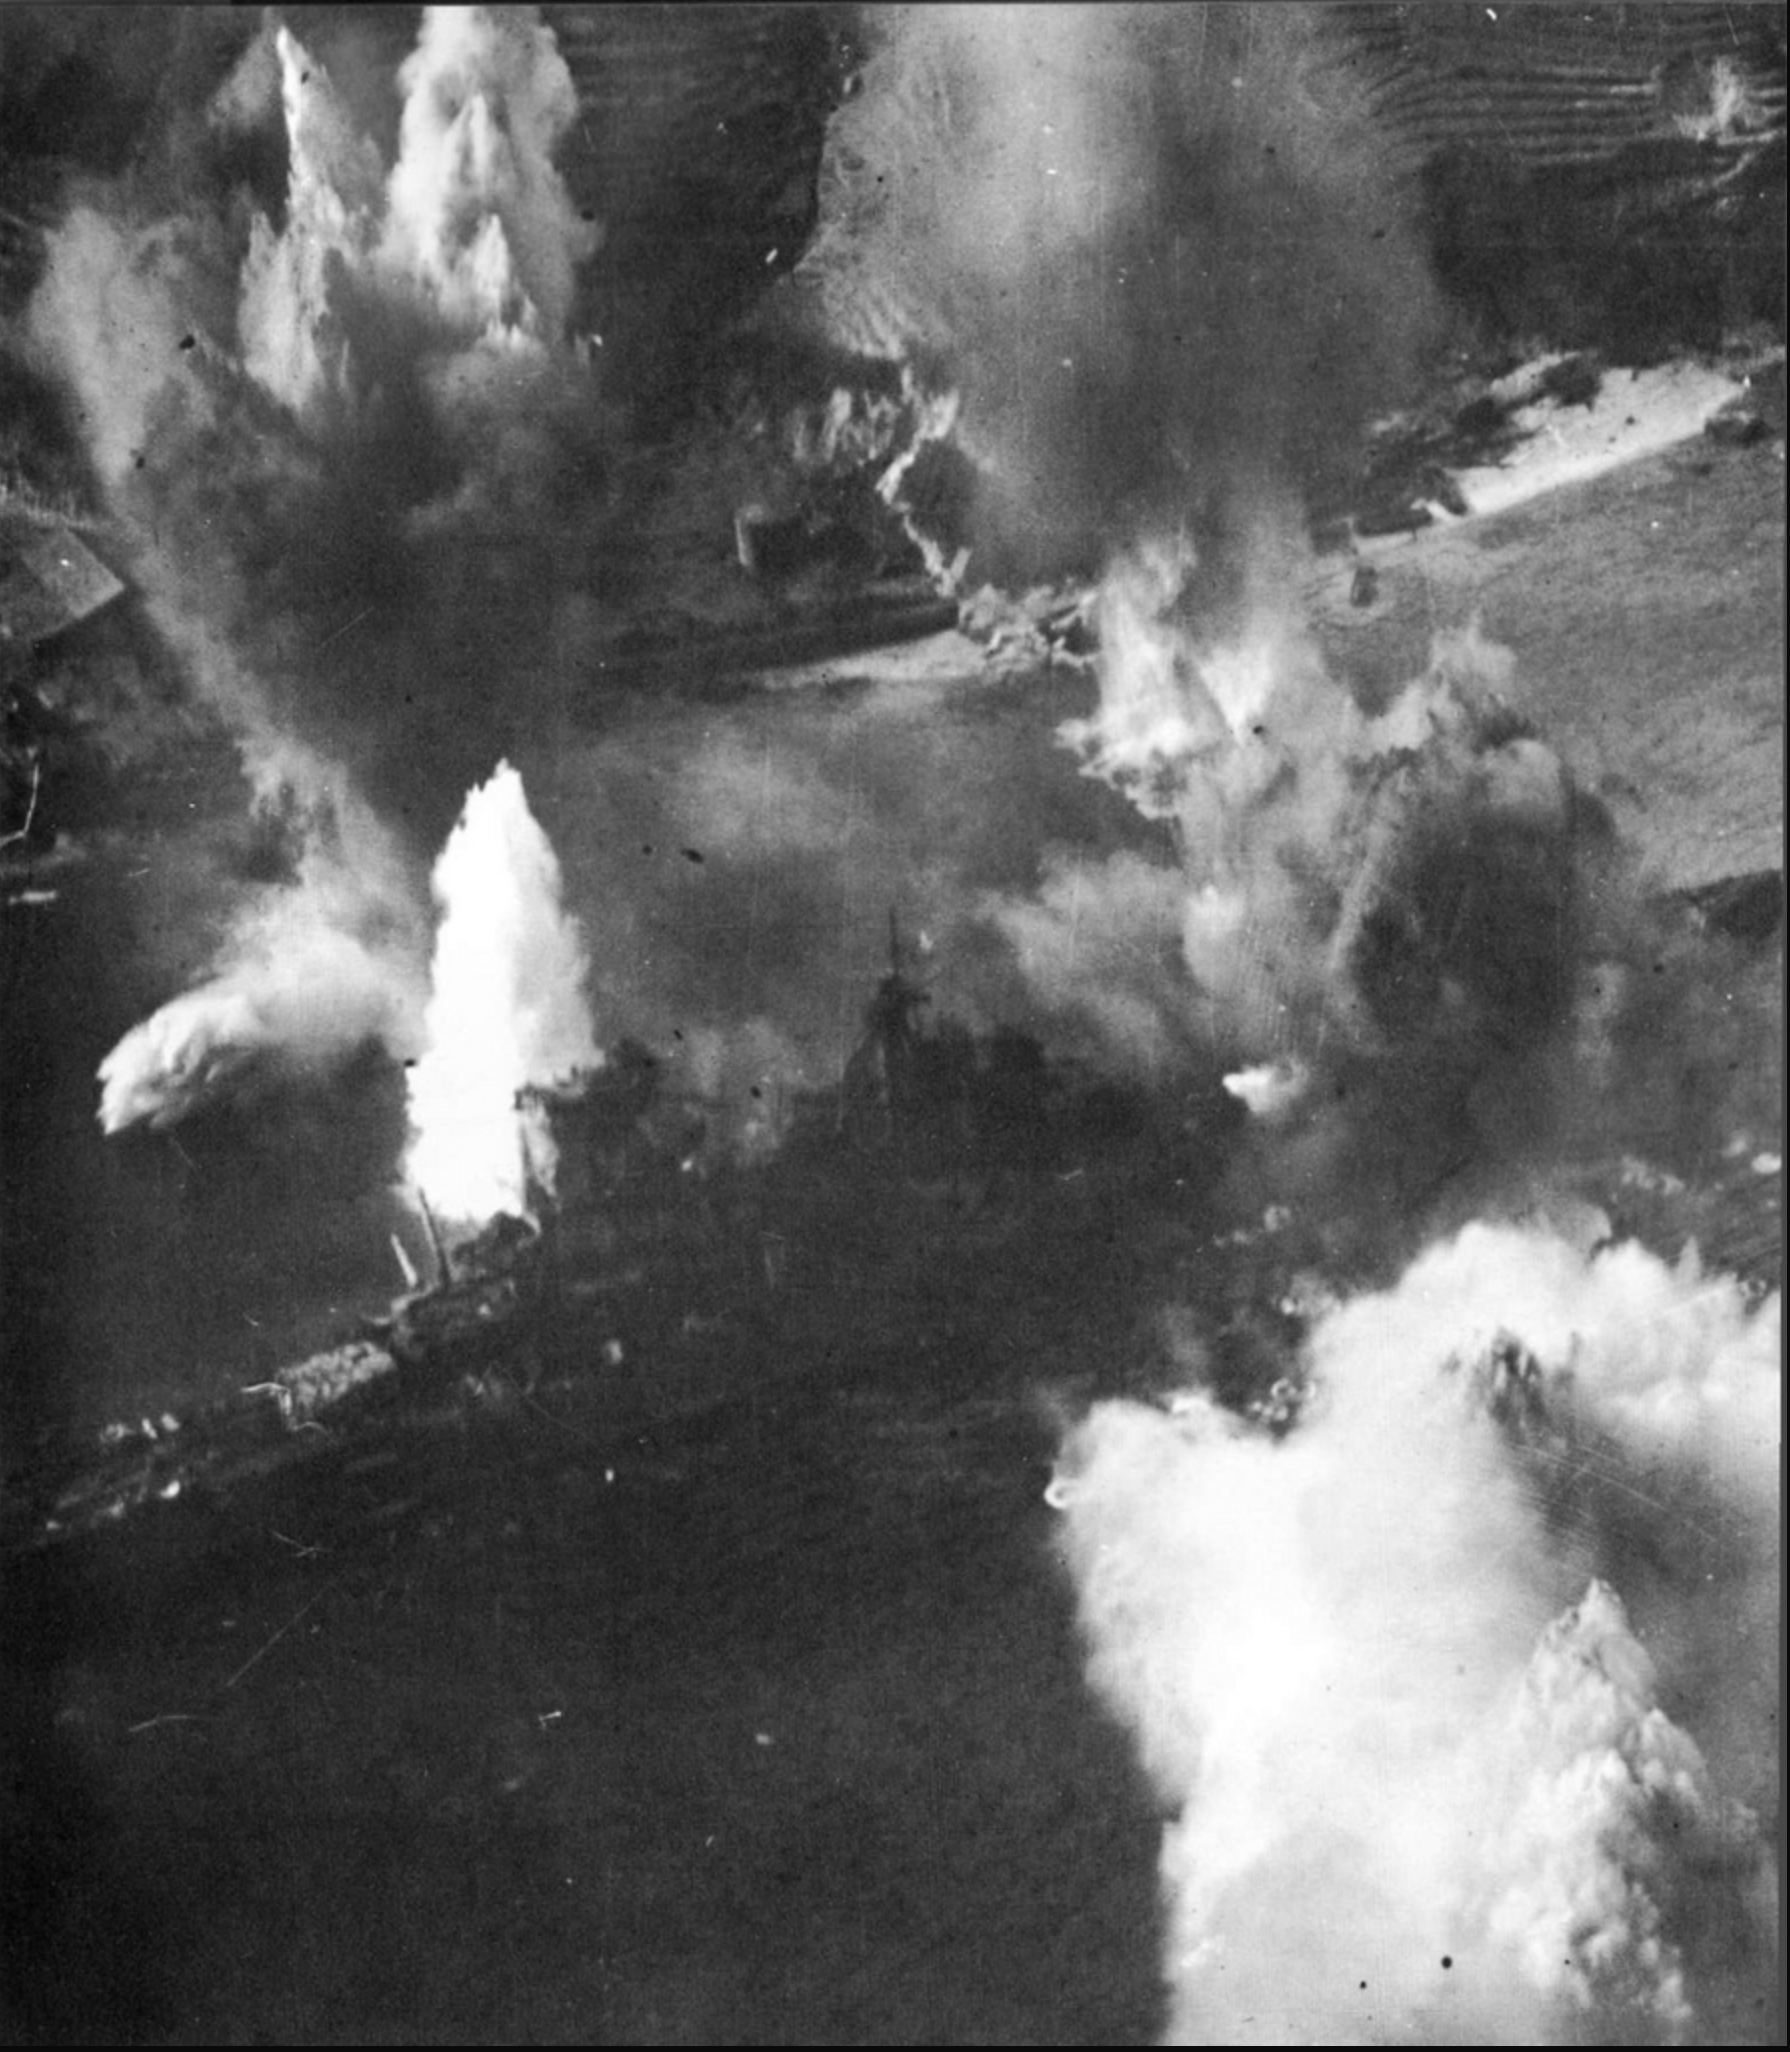 The stern of the  Haruna  appears to be struck by a bomb while other bombs and torpedos explode, as well.